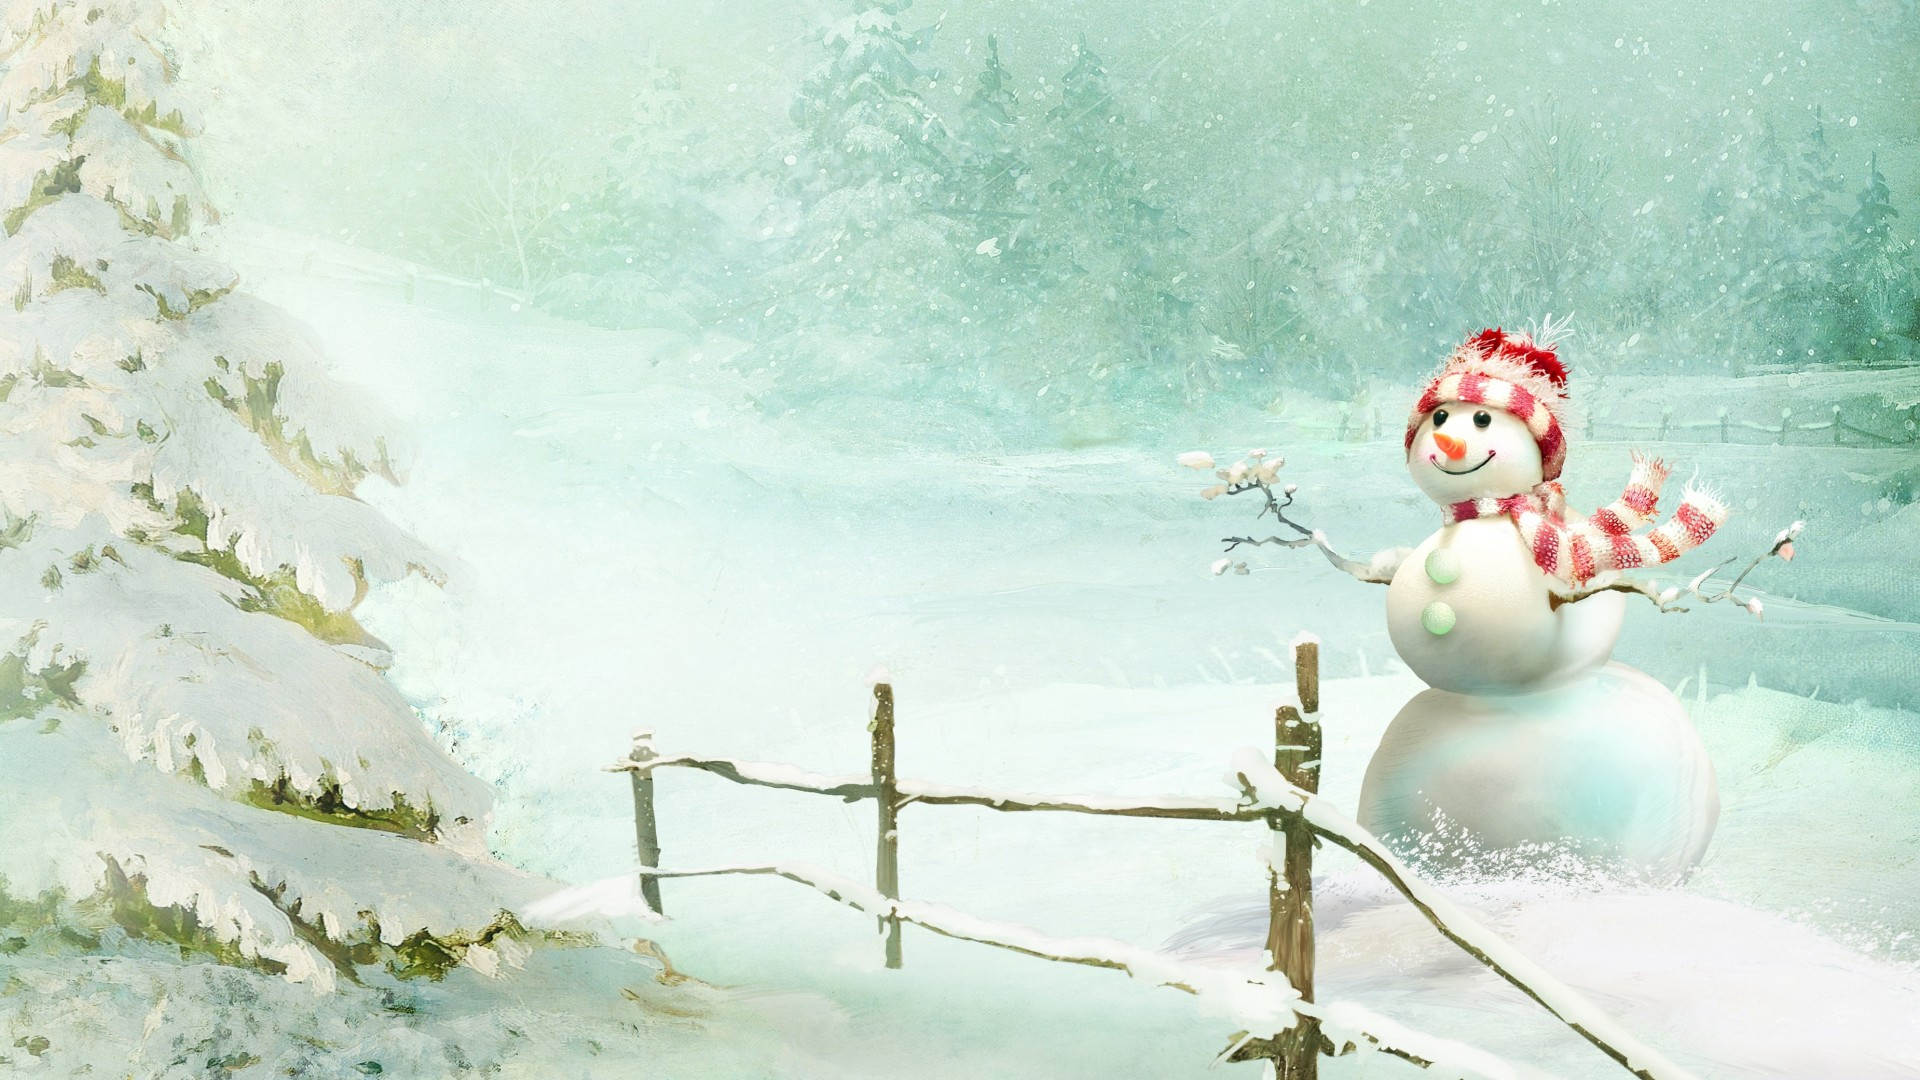 Snowman-In-Snow-Winter-Wallpaper